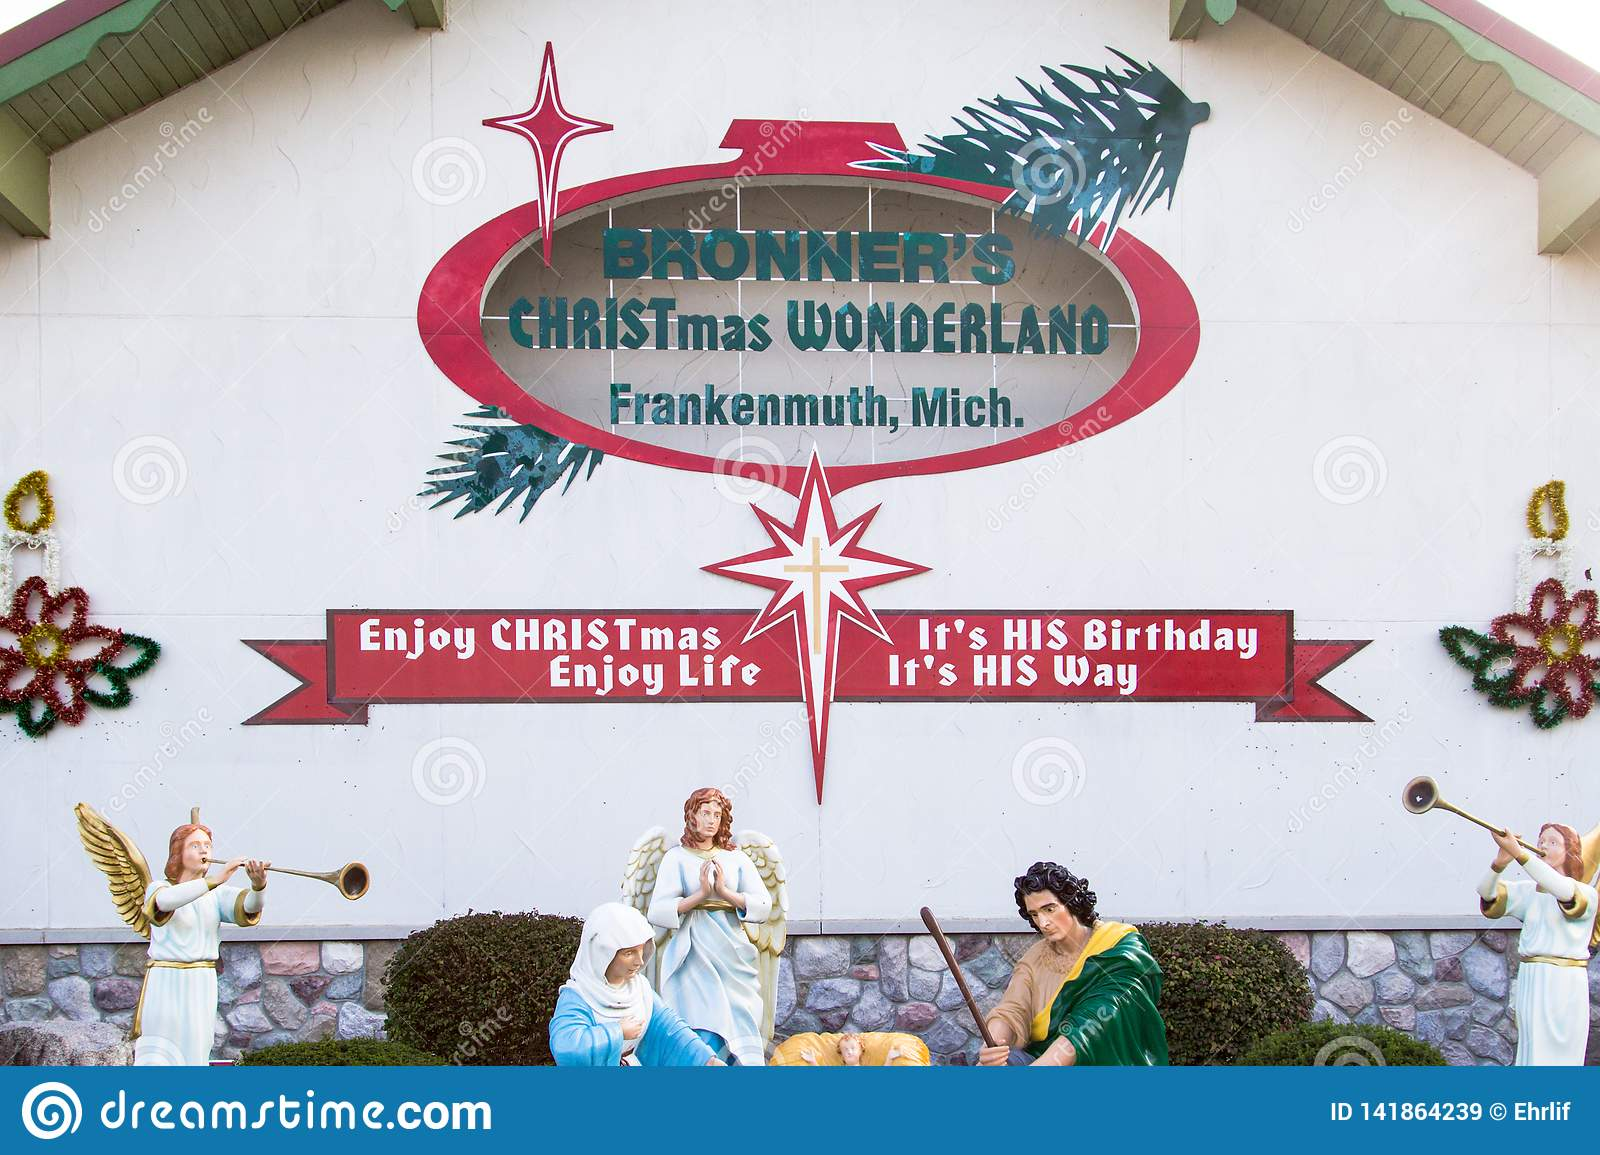 Bronners Christmas.Bronners Christmas Wonderland Exterior In Frankenmuth